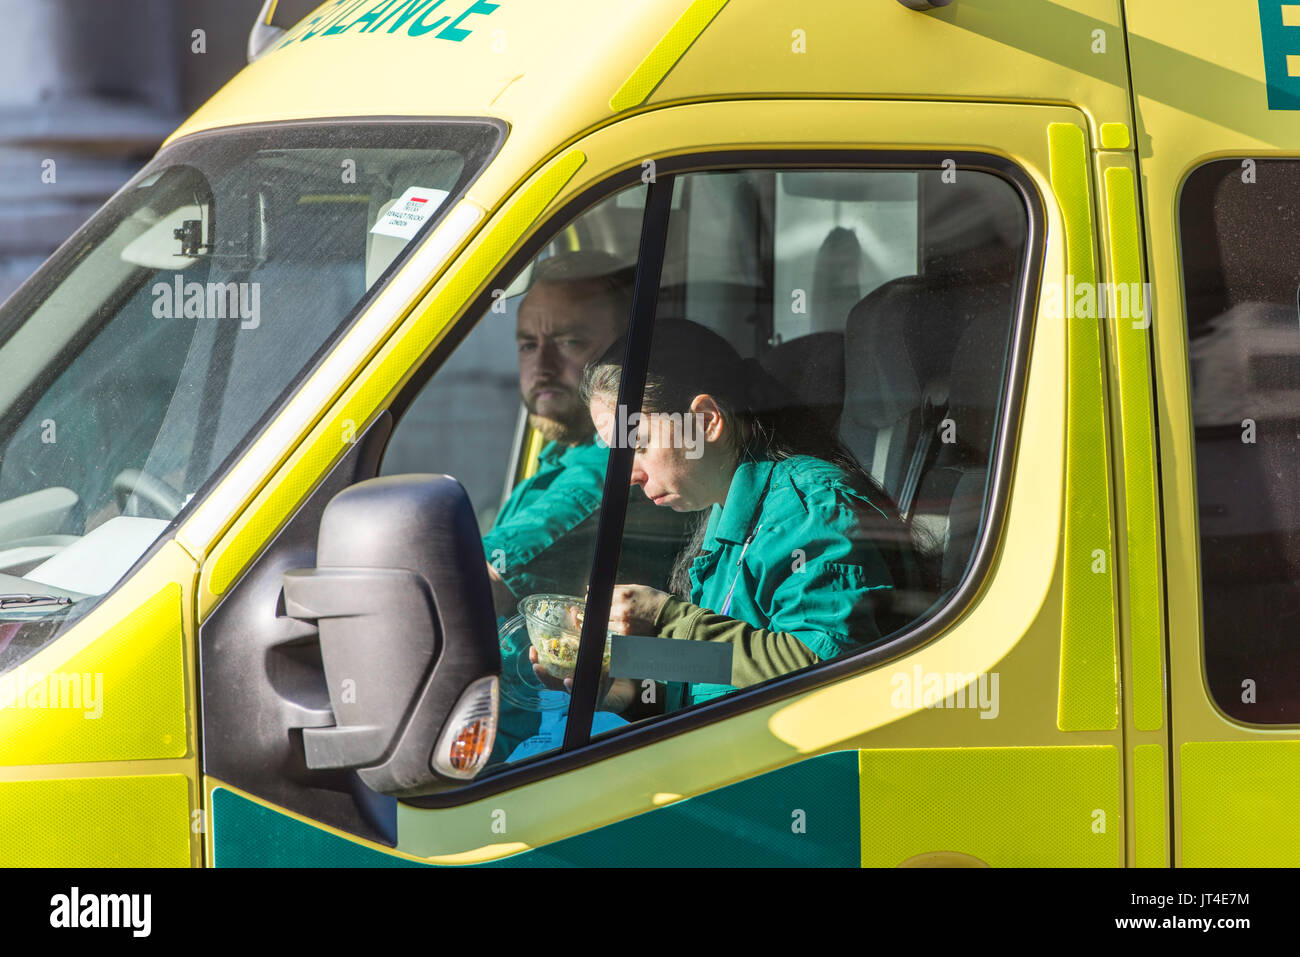 Ambulance stationary in traffic in London, UK. The female paramedic is eating her lunch in the passenger seat. - Stock Image